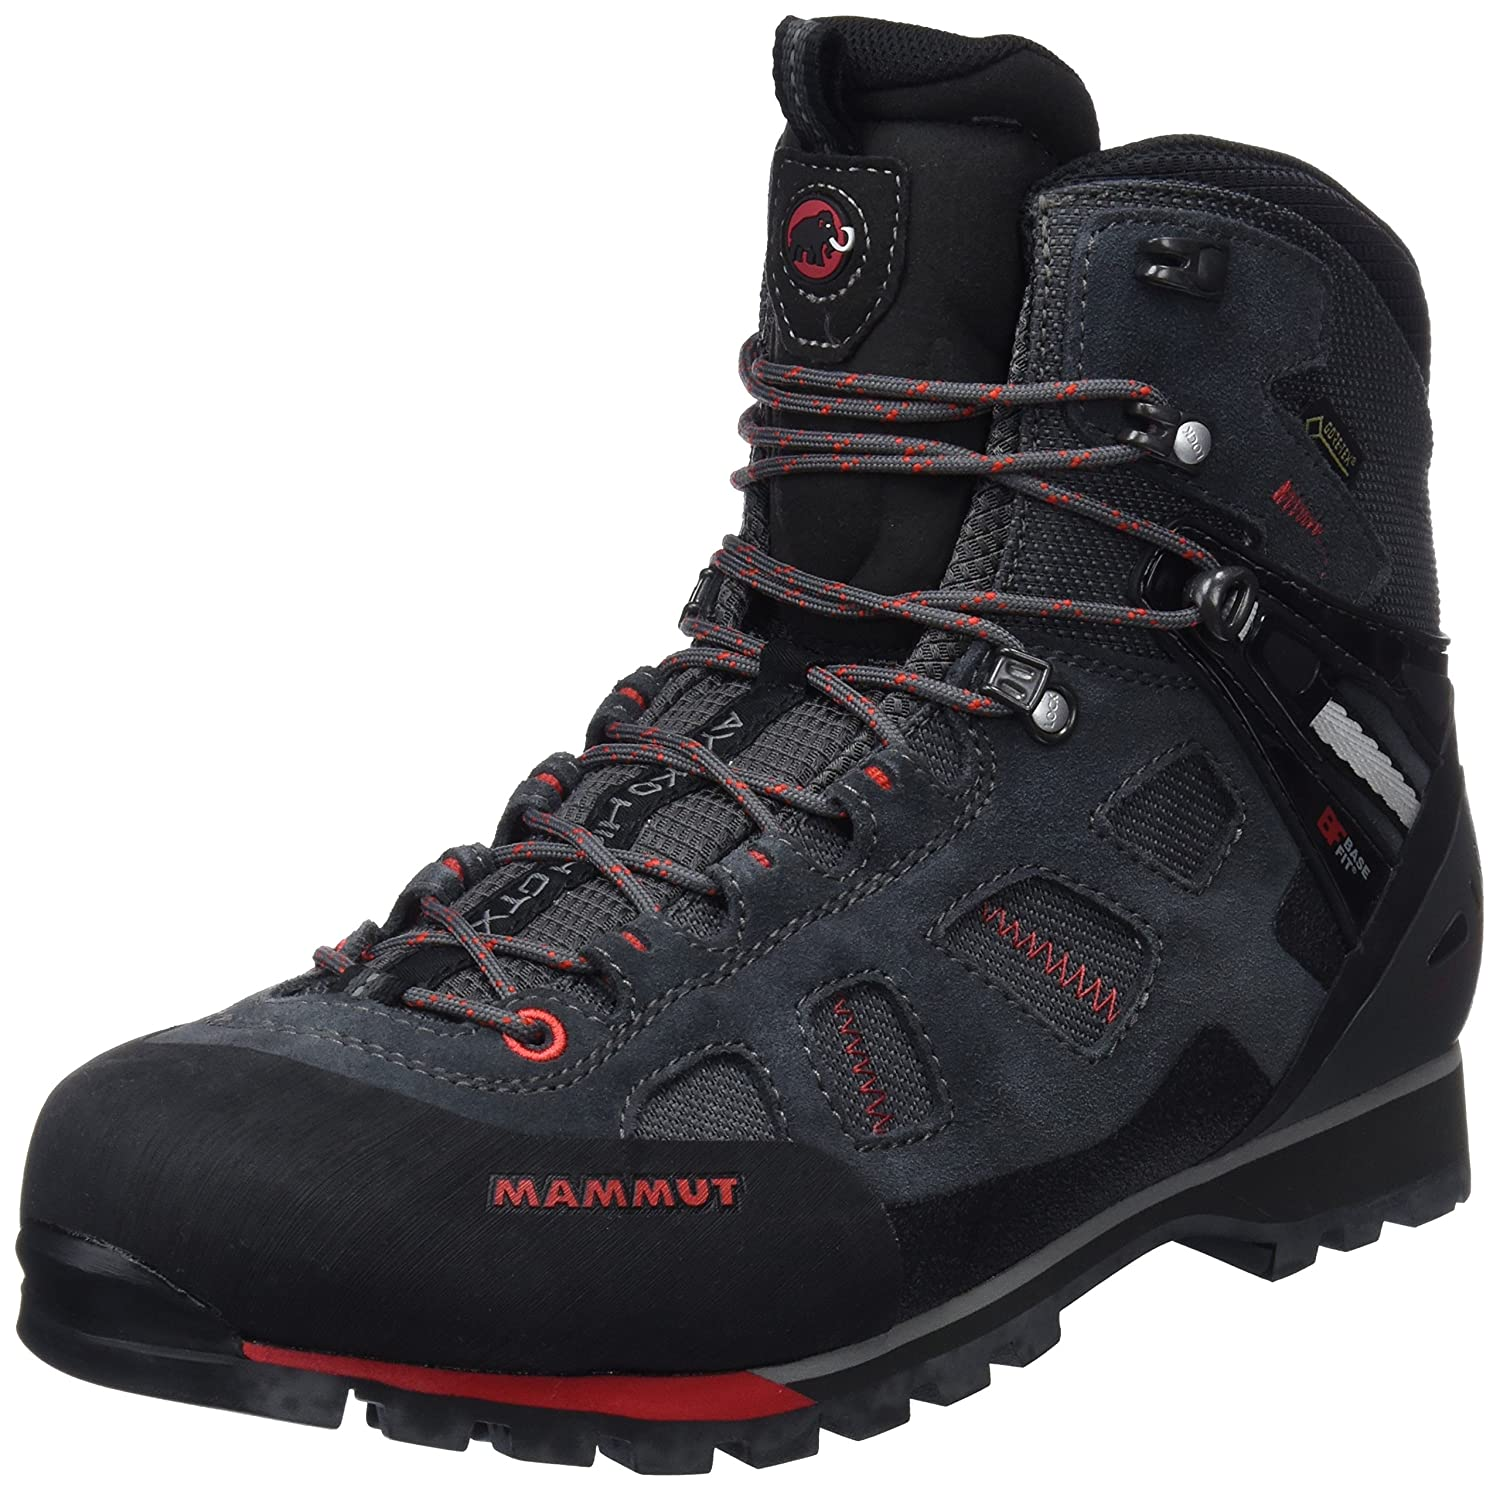 Mammut Ayako High GTX Backpacking Boot - Men's 3020-05430-0609-1110